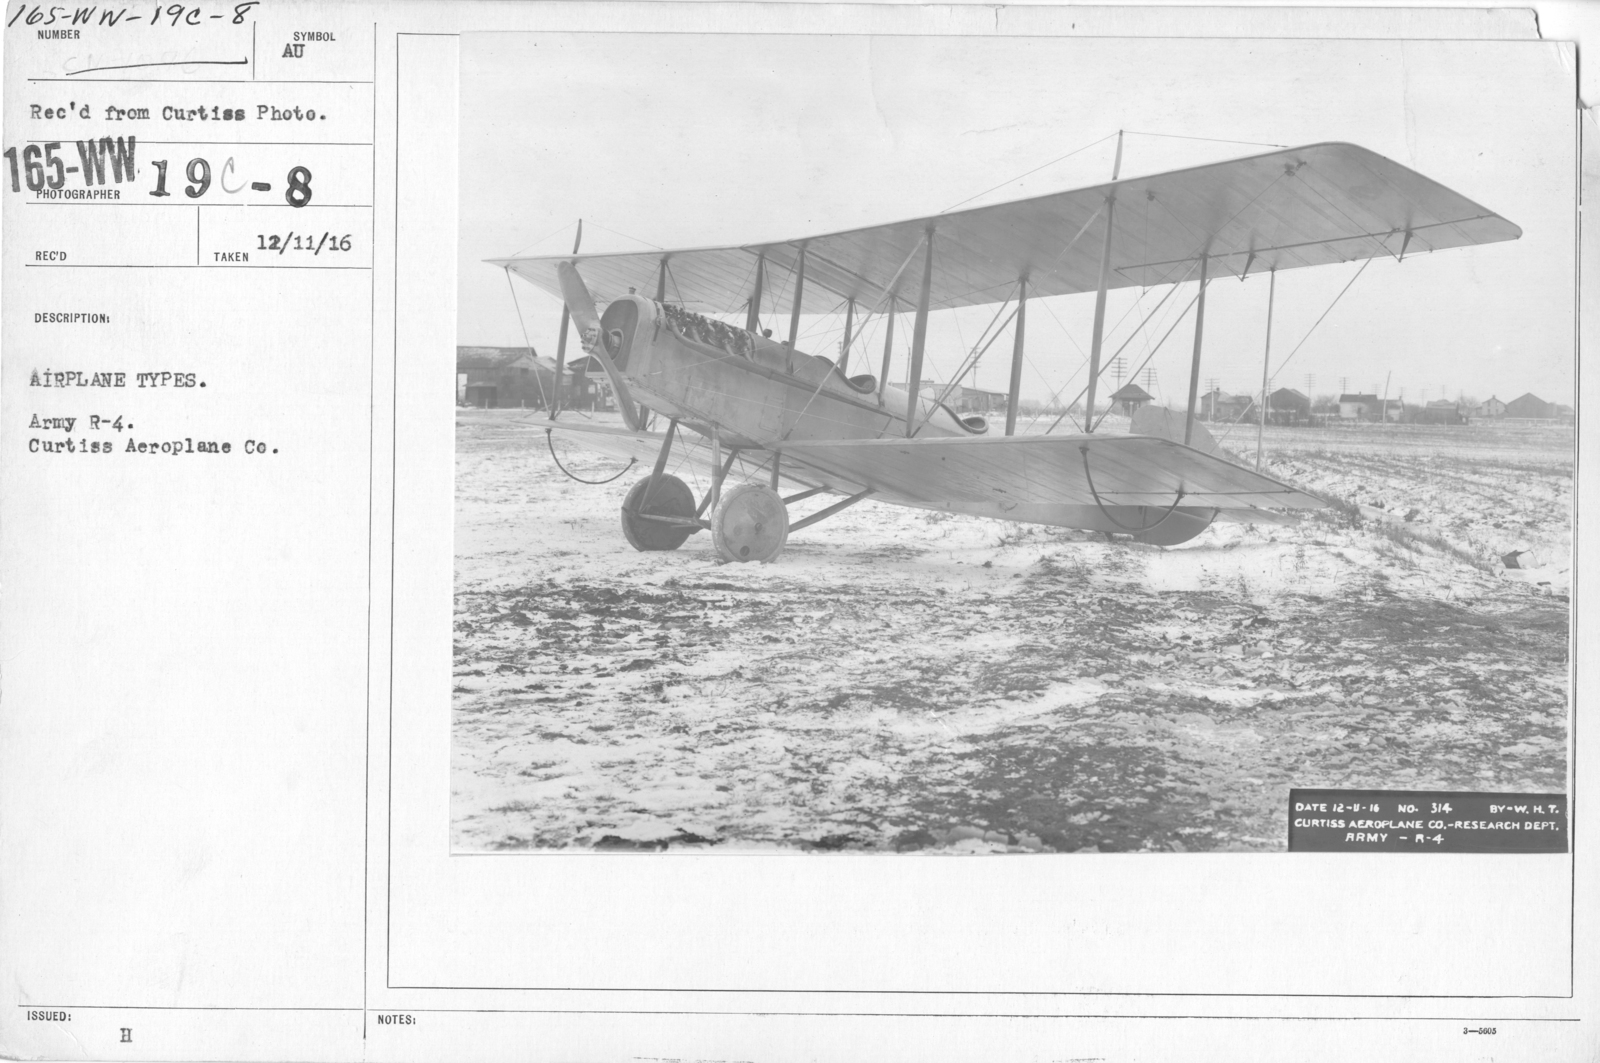 Airplanes - Types - Airplane types. Army R-4. Curtiss Aeroplane Co